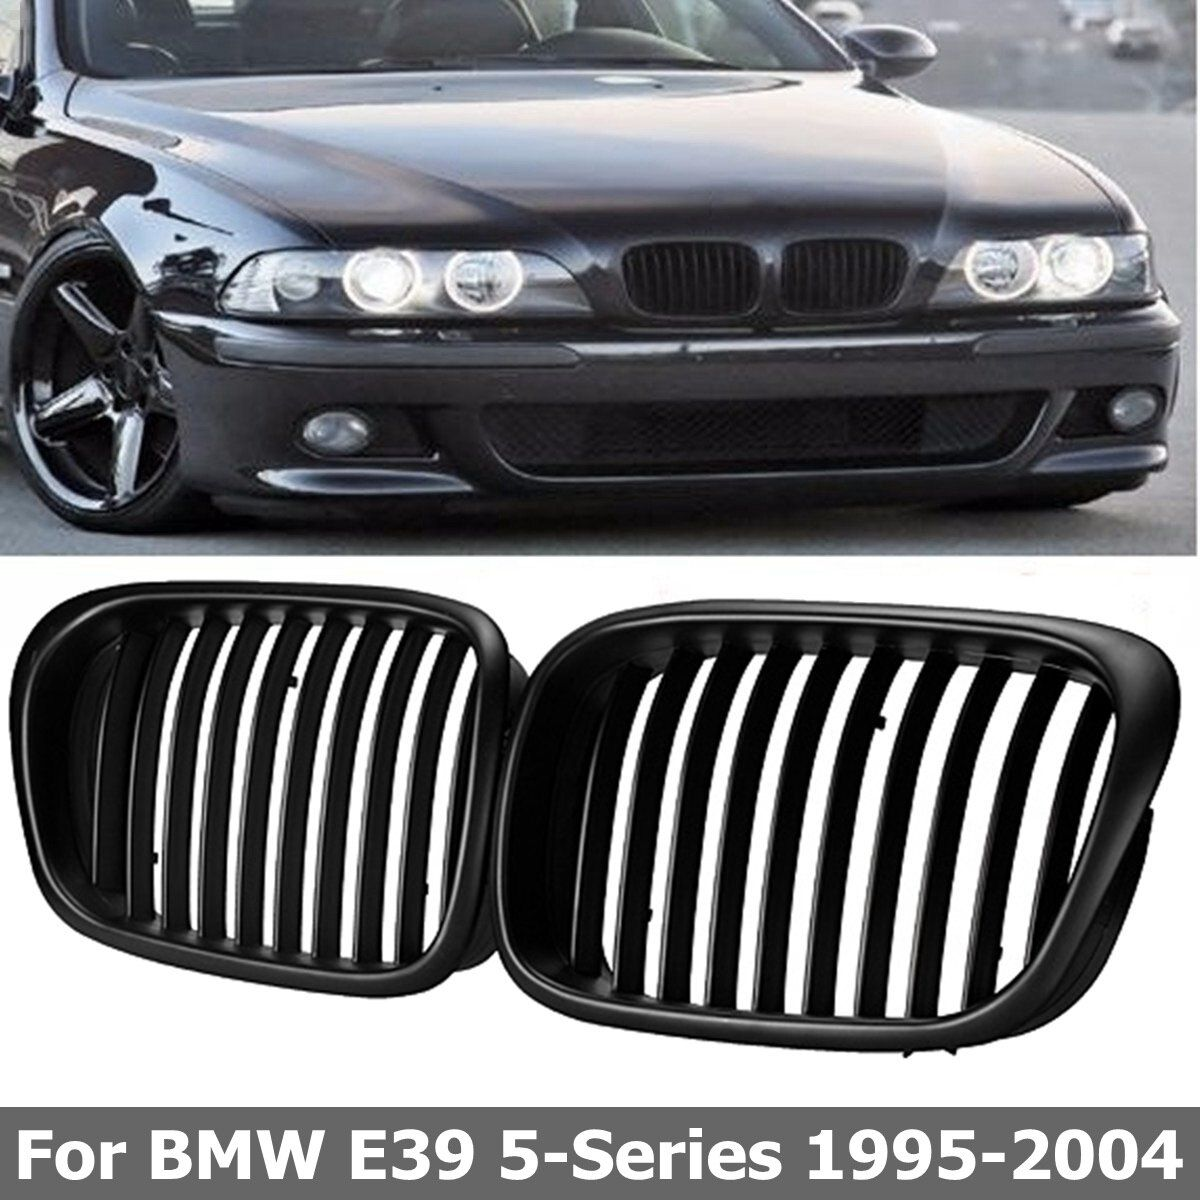 2pcs OEM Style Car Front Black Wide Kidney Grille Grill for BMW E39 5 series 1997 1998 1999 2000 2001 2002 2003